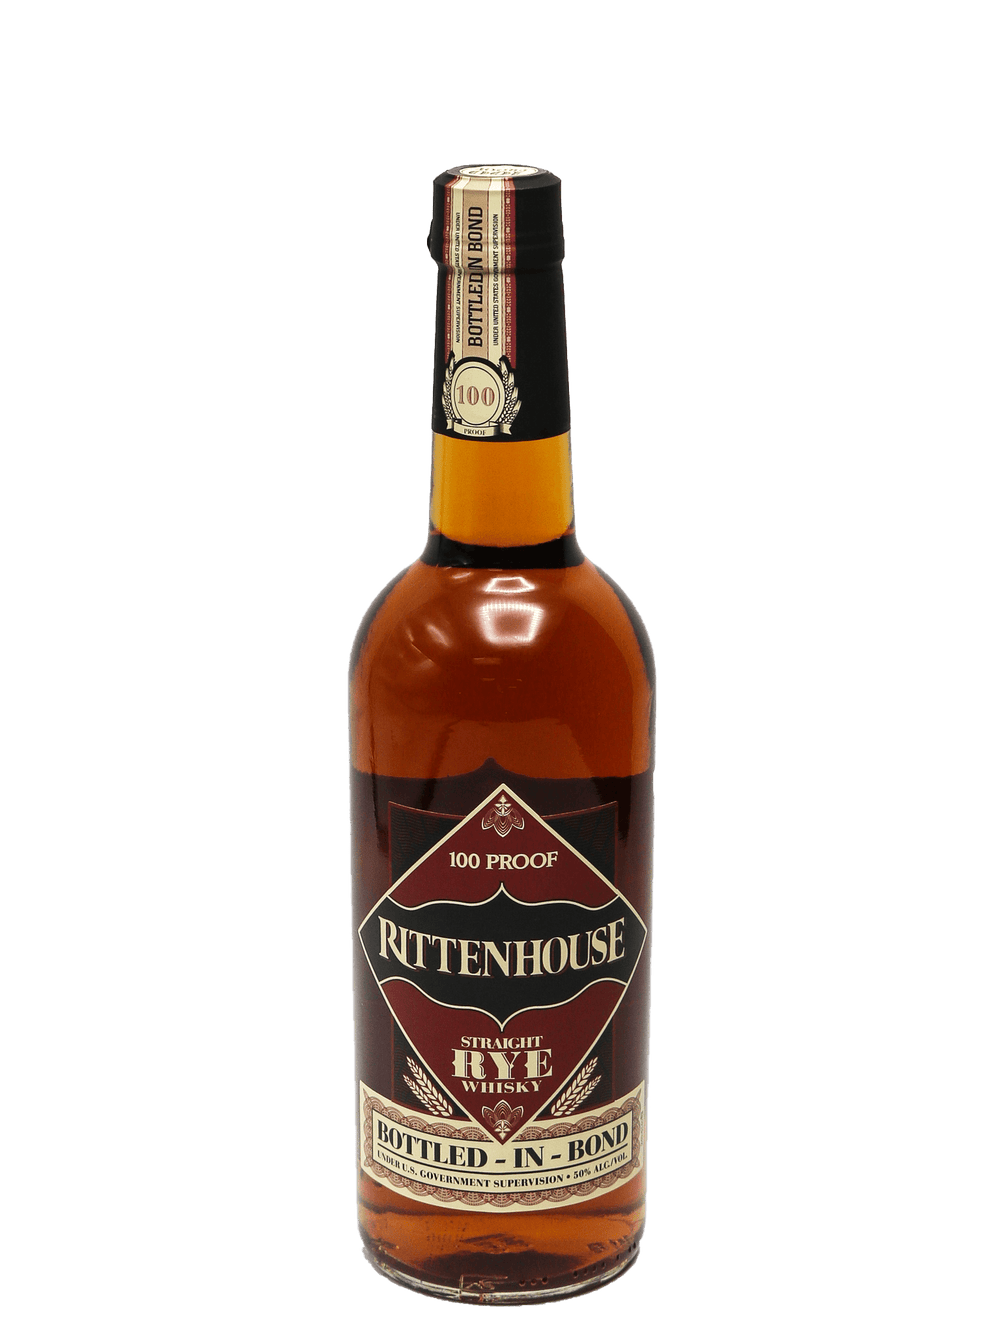 Rittenhouse 100 Proof Rye 750ml